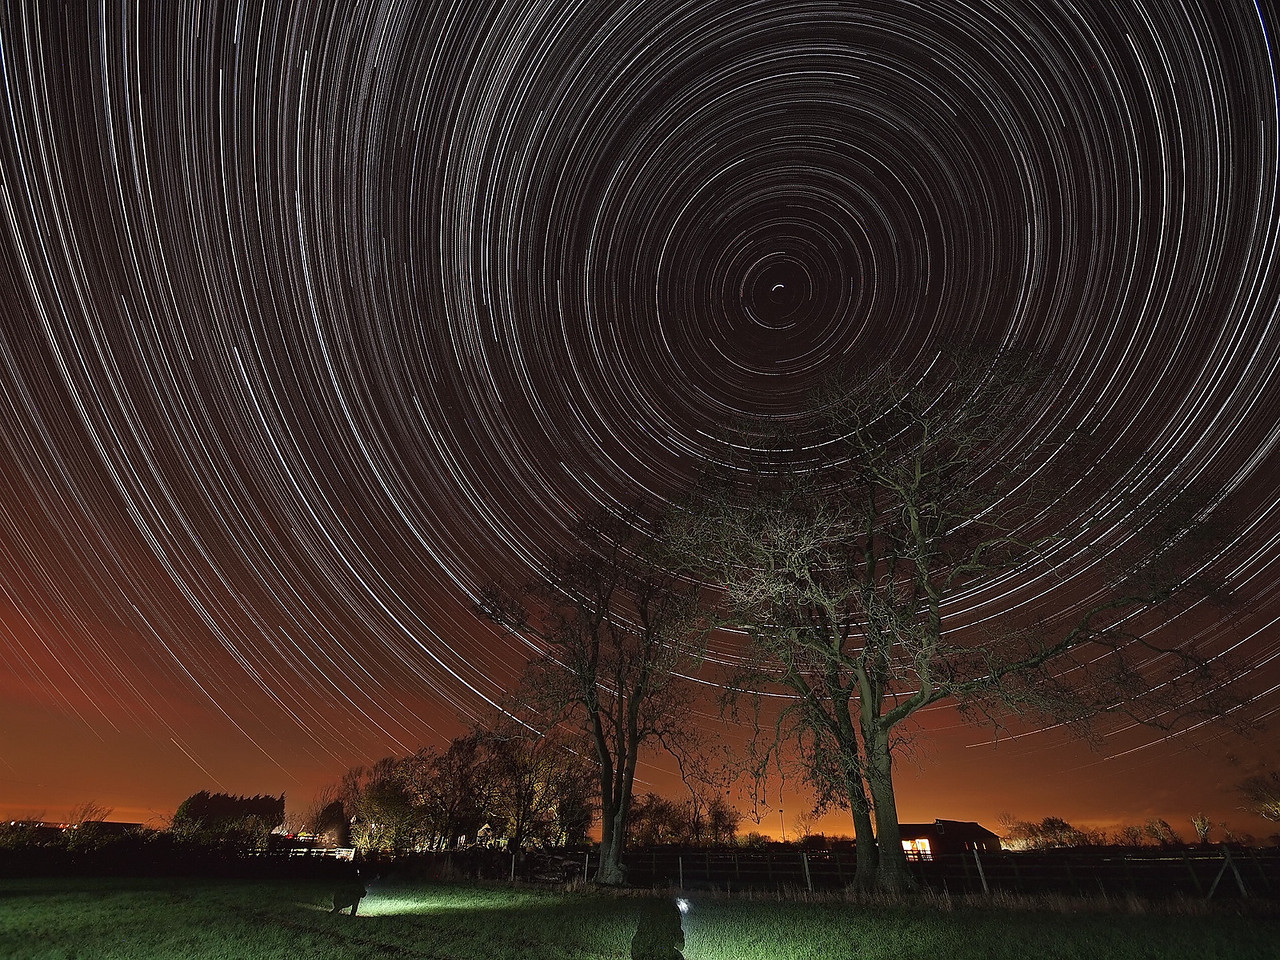 Nov 22/23 2011 startrail. Seems an age since we last had clear skies....in fact it was! Took the opportunity to grab another startrail in spot ventured before. Come out quite nice. Put camera in the field approx 1930 hrs and left it shooting continuous all night (15s exposures). Picked it up at 0730 the following morning. Captured with Olympus E5 & 8mm fisheye. 15s exposure time, F3.5 and ISO 640. Foreground and trees lit with flash bursts.